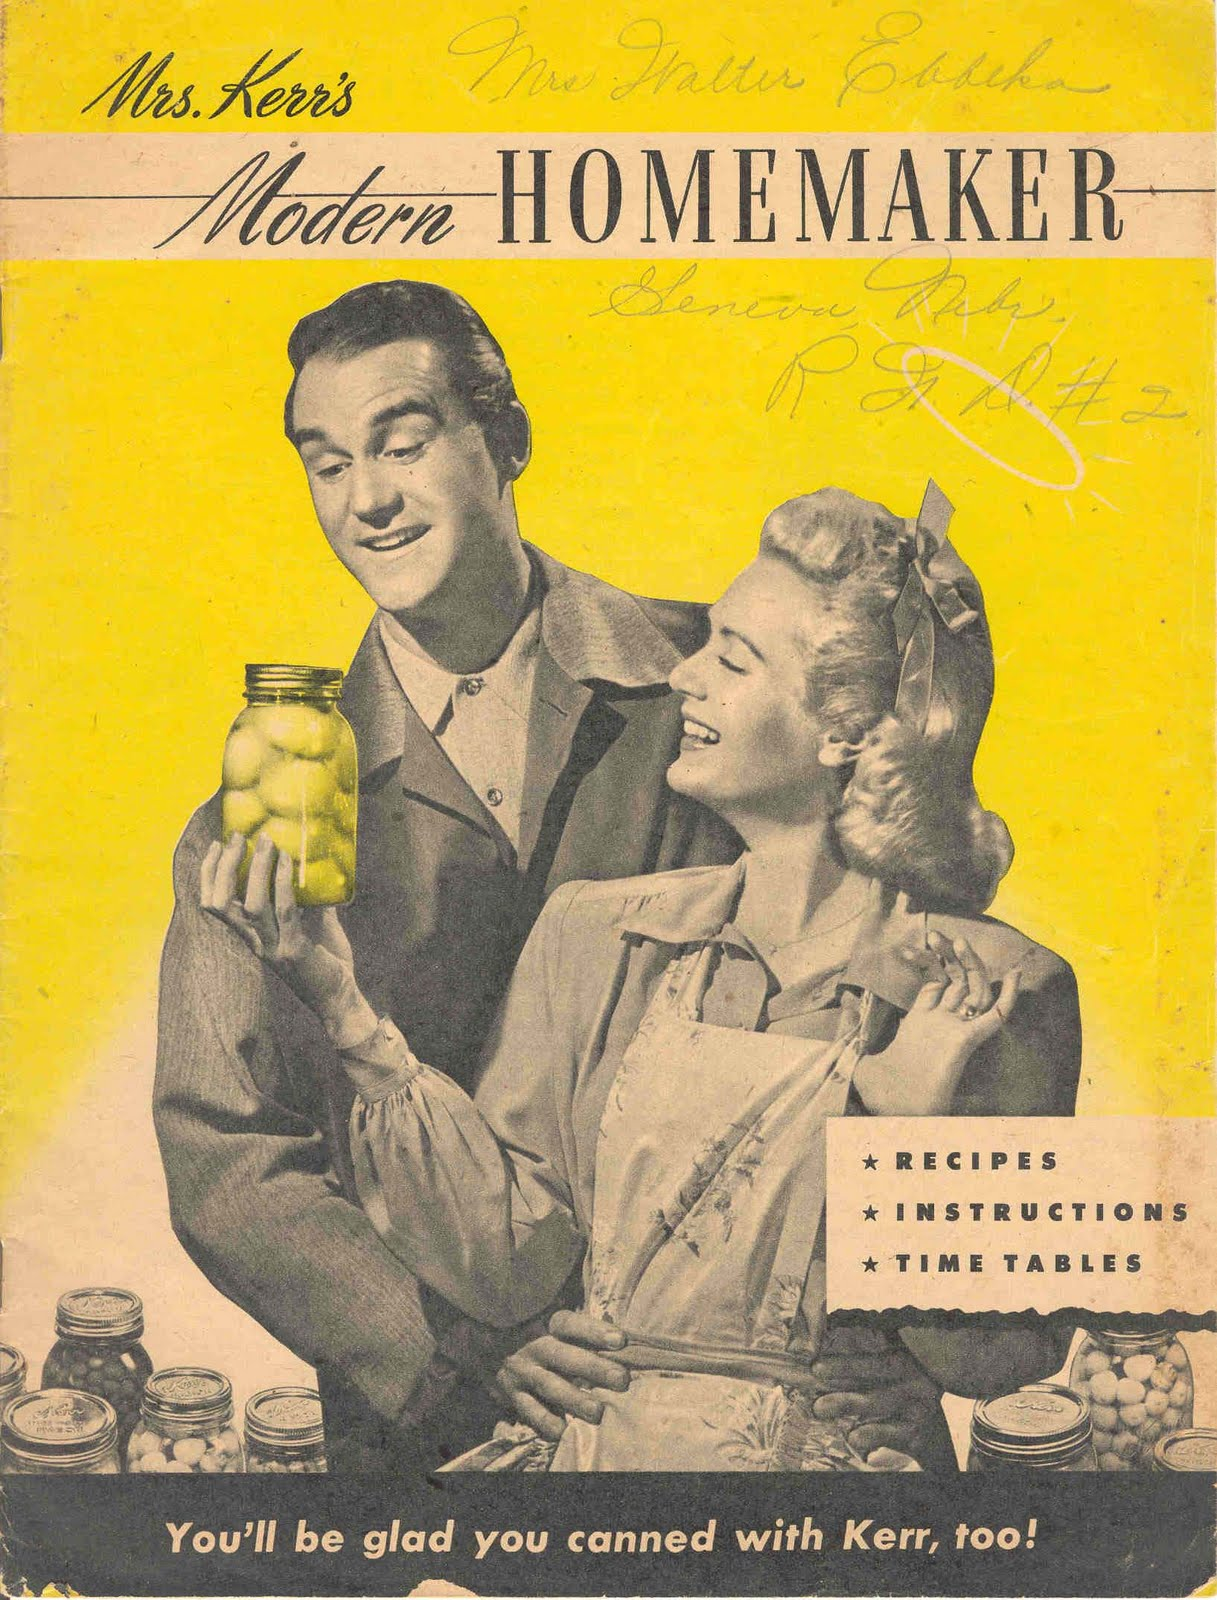 Common Graces From Housewife to Homemaker